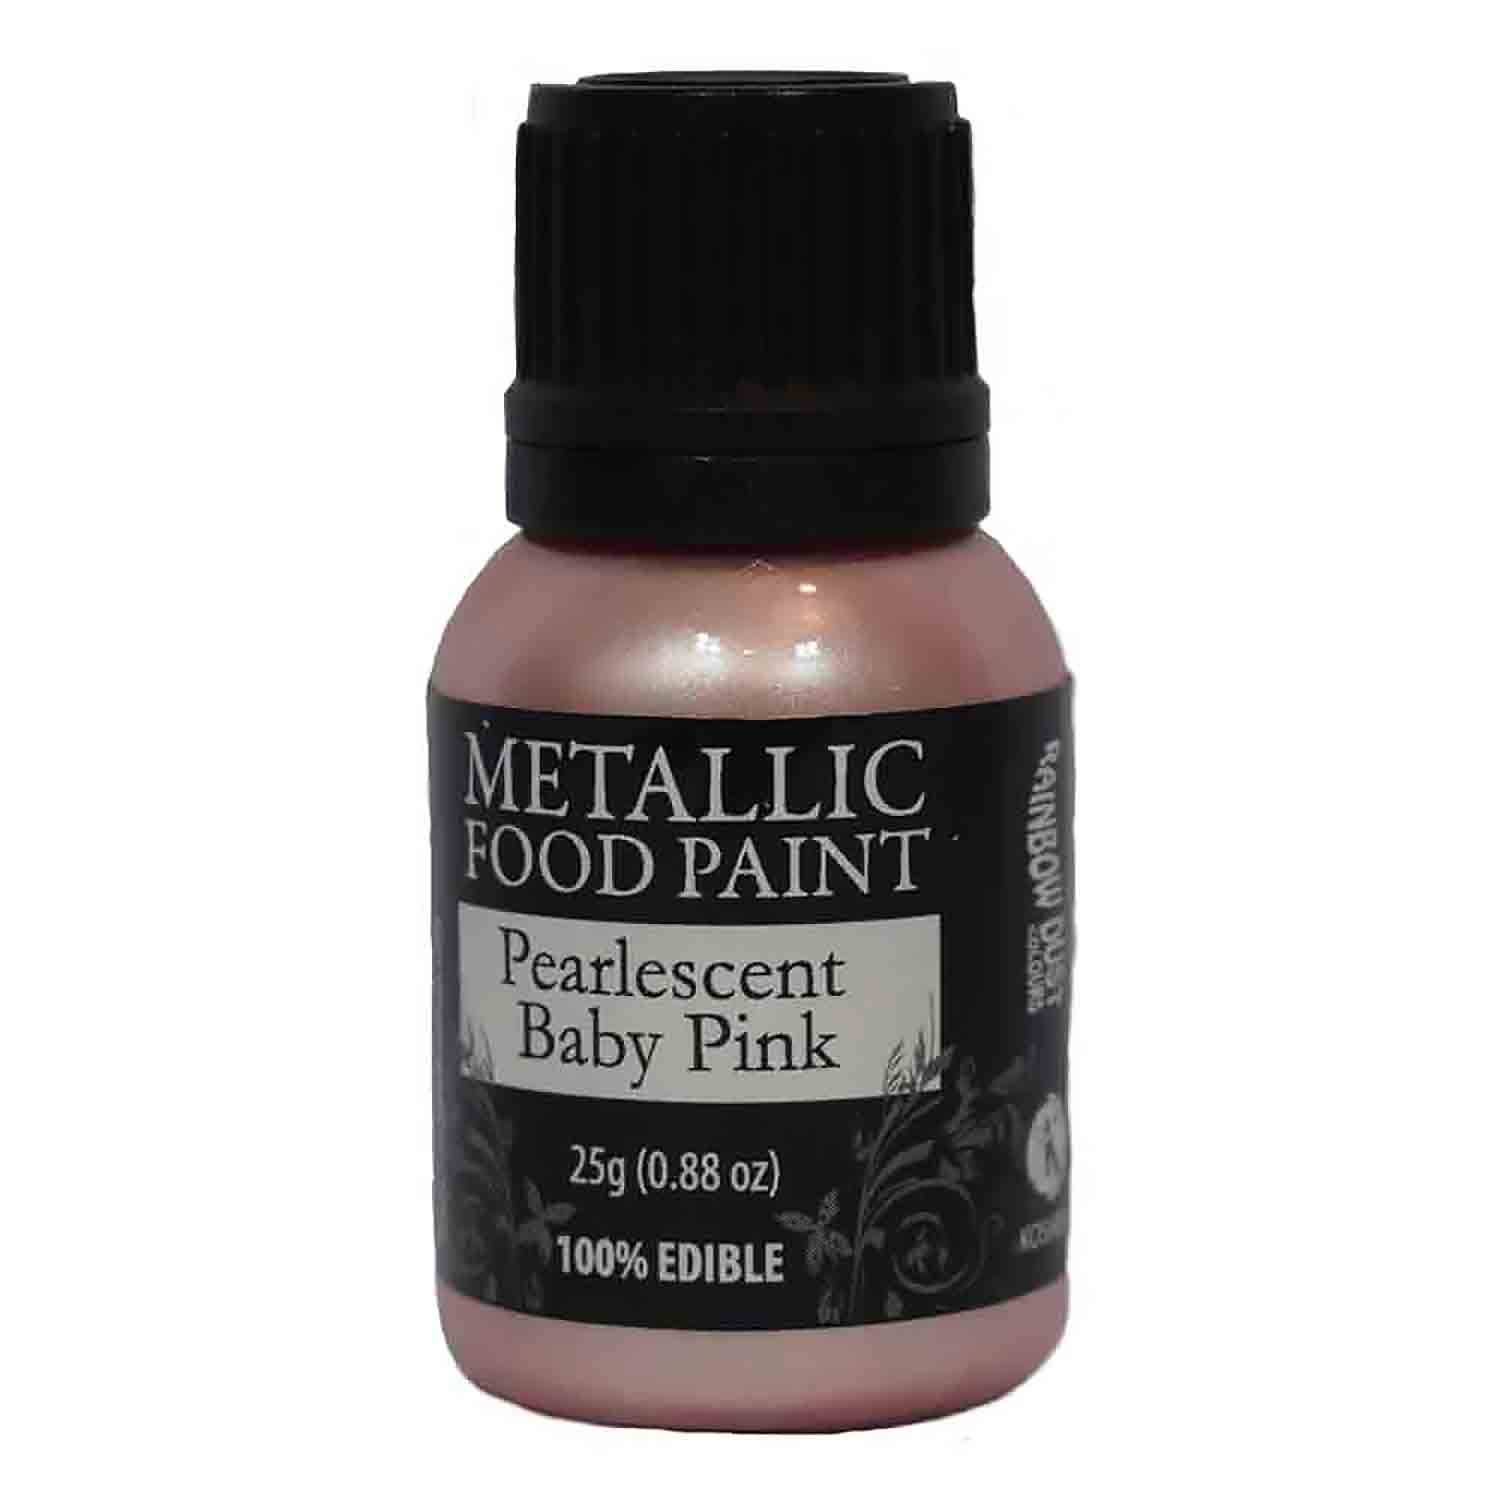 Metallic Food Paint